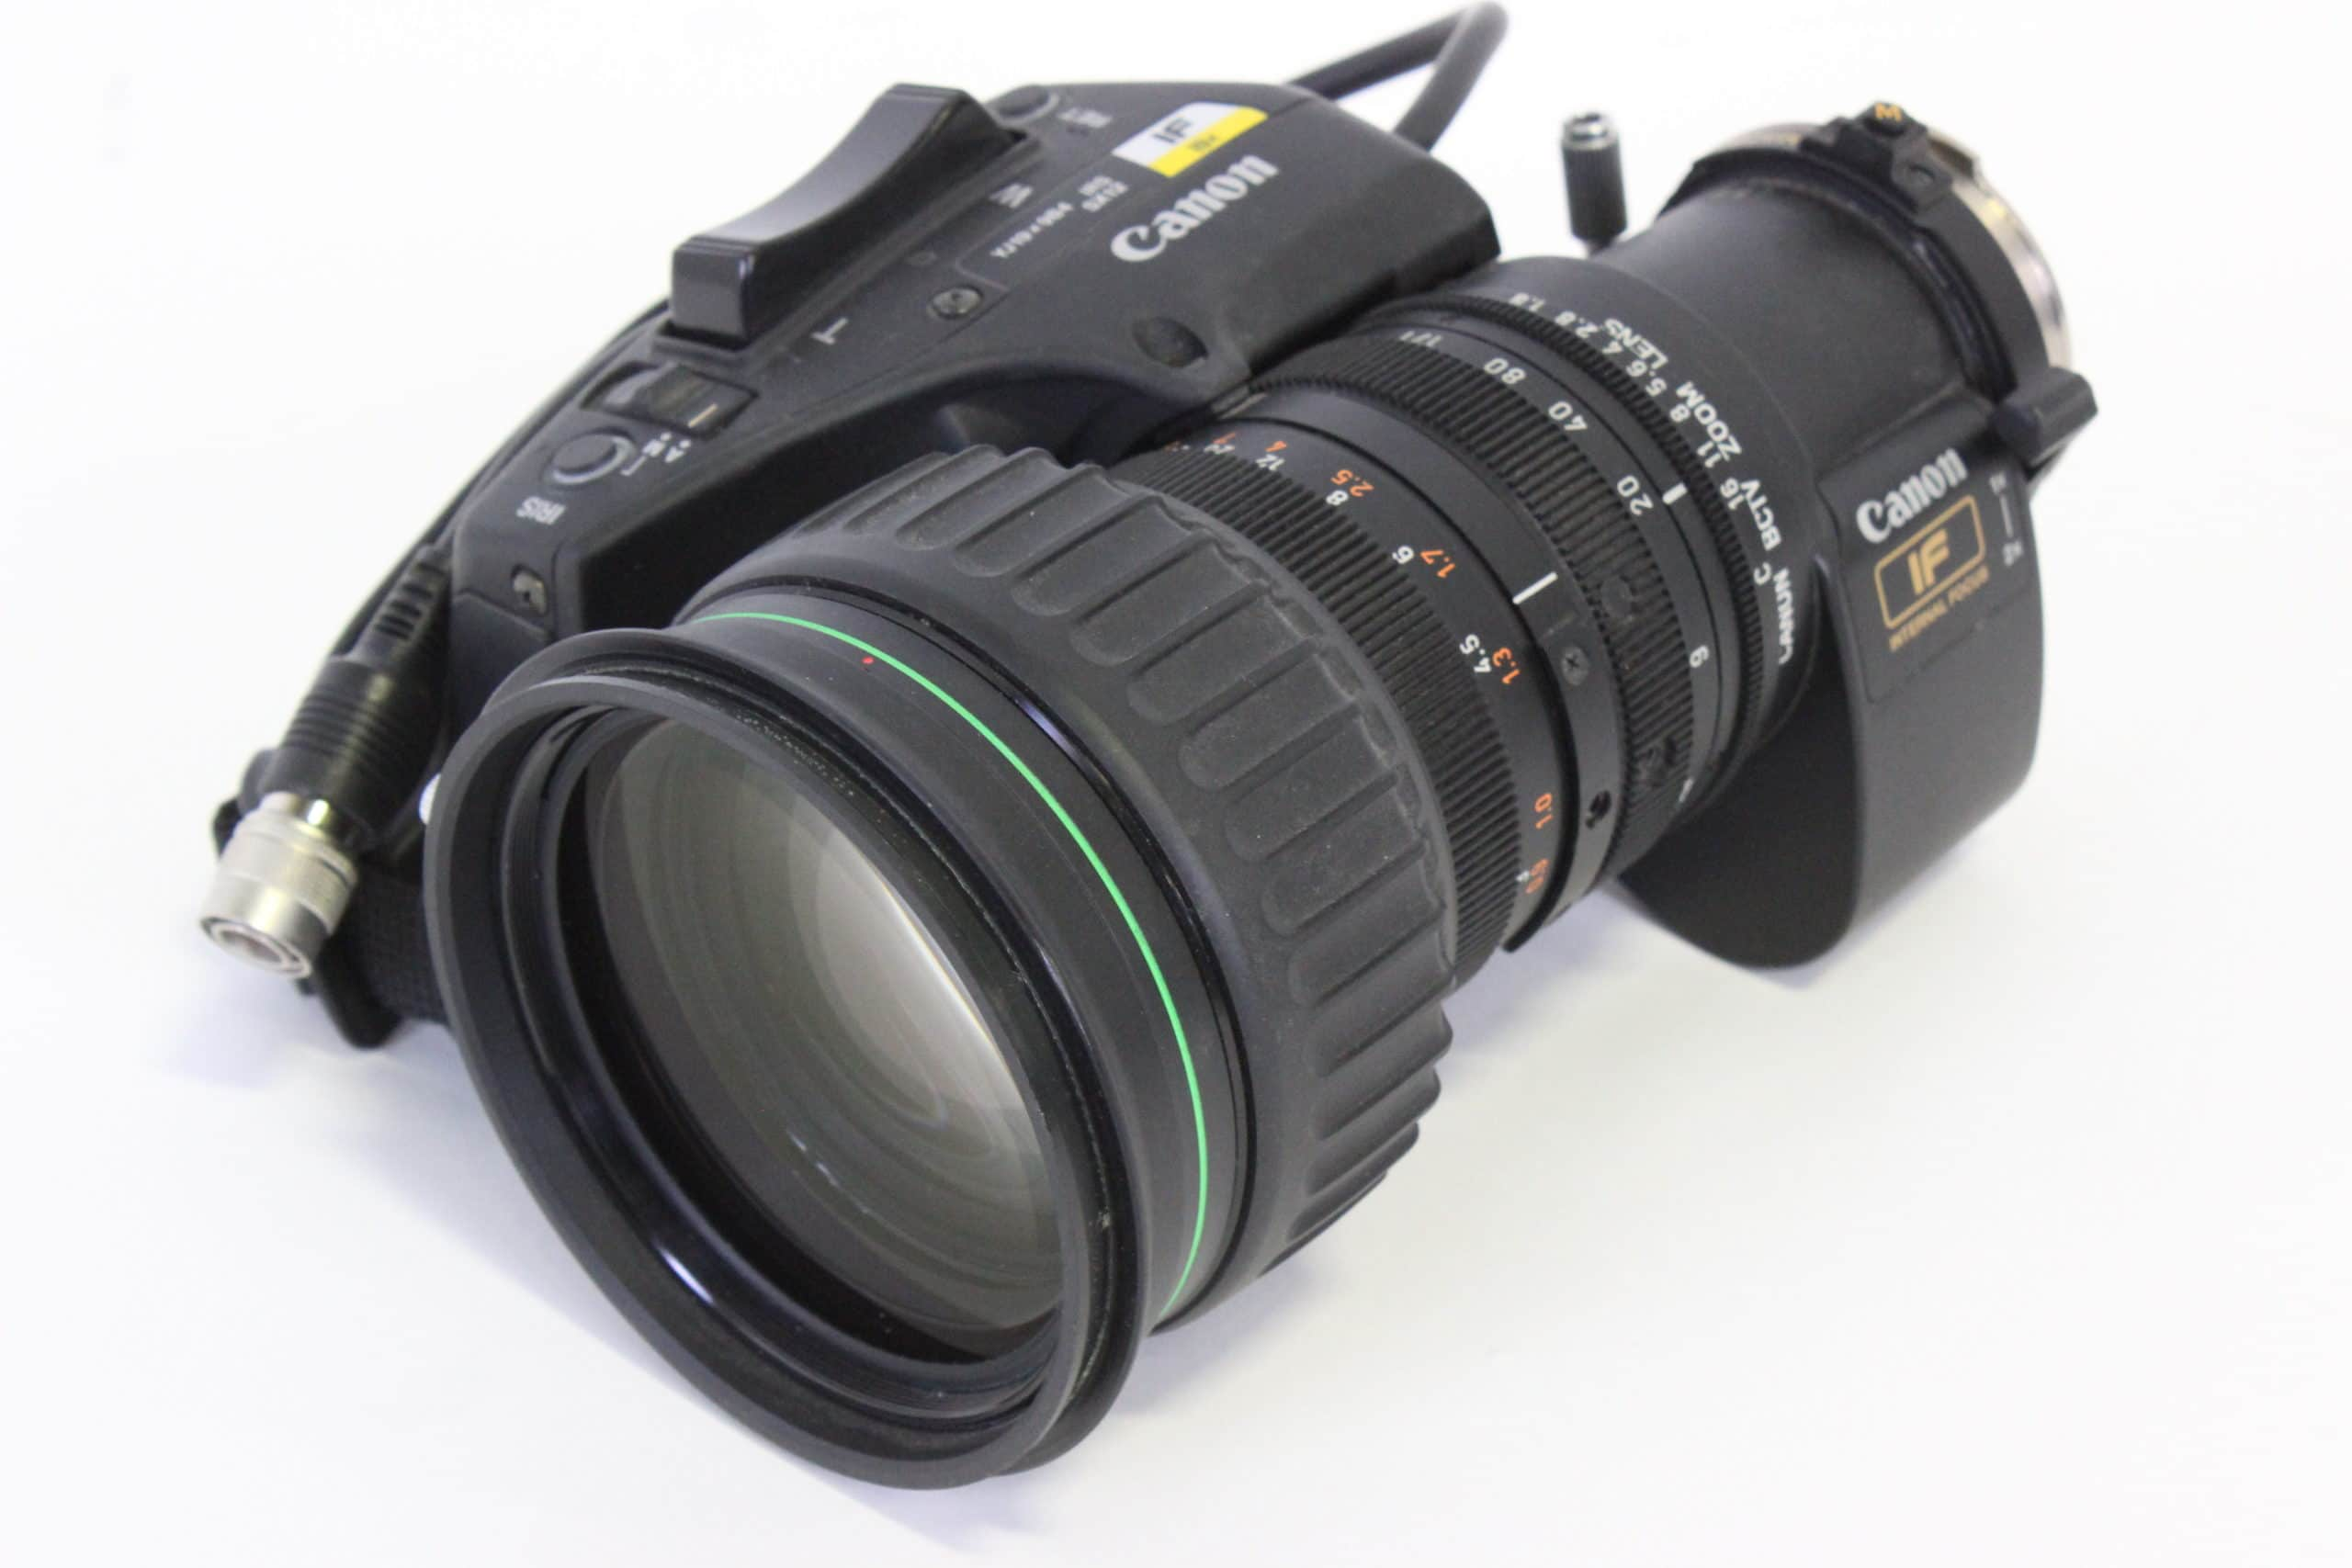 canon-yj19x9b4-irs-sx12-if-19x-2-3-zoom-lens-w-2x-extension side1